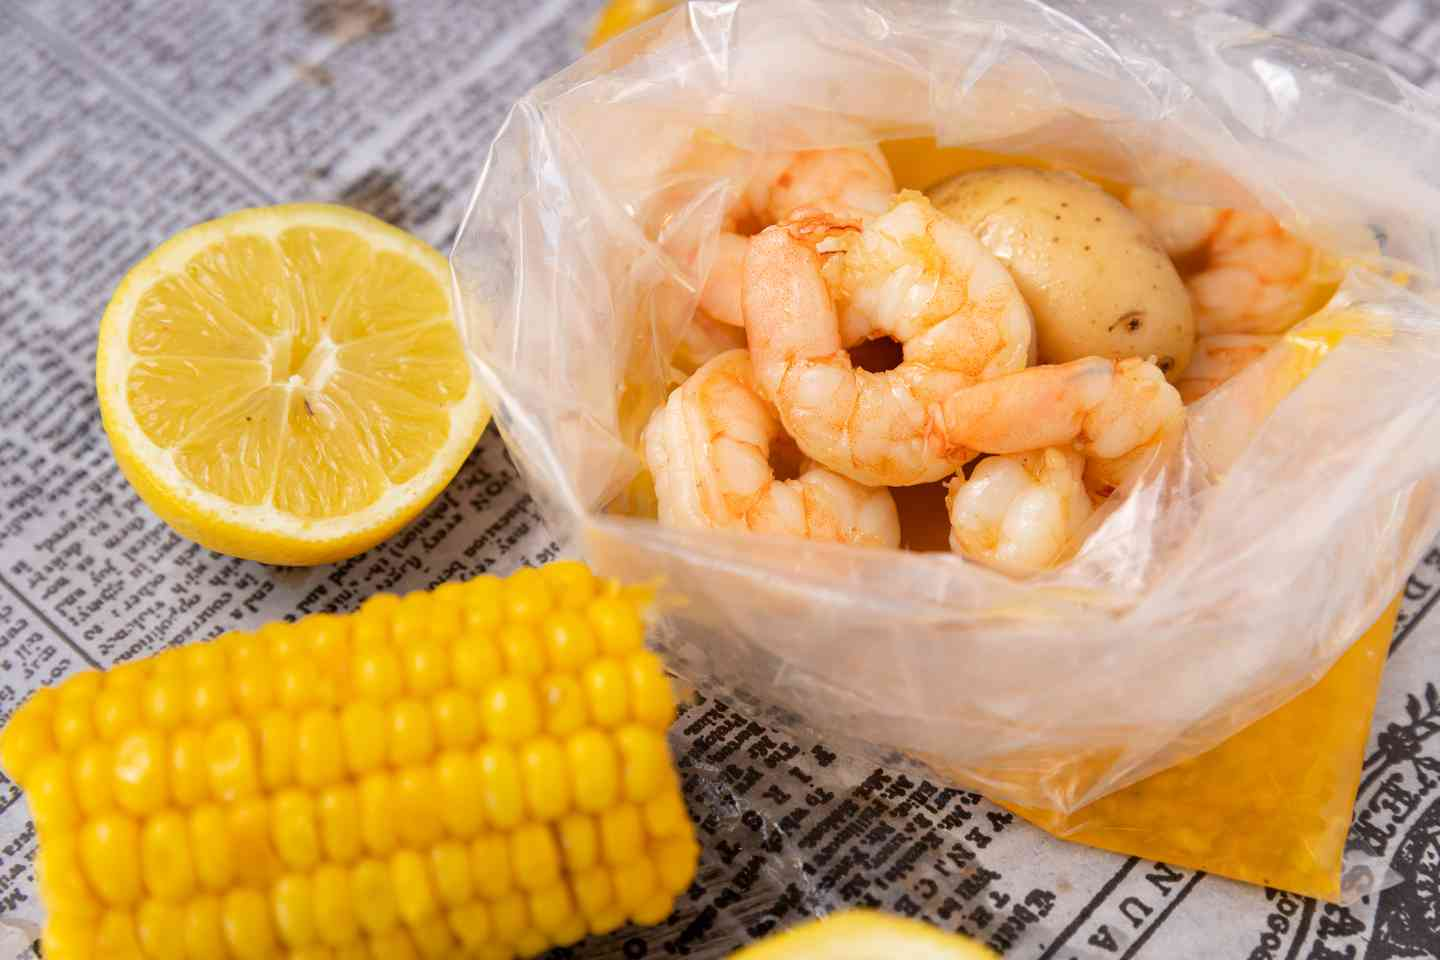 Kids Shrimp (8 Pcs of Naked + 1 Corn + 1 Potato)